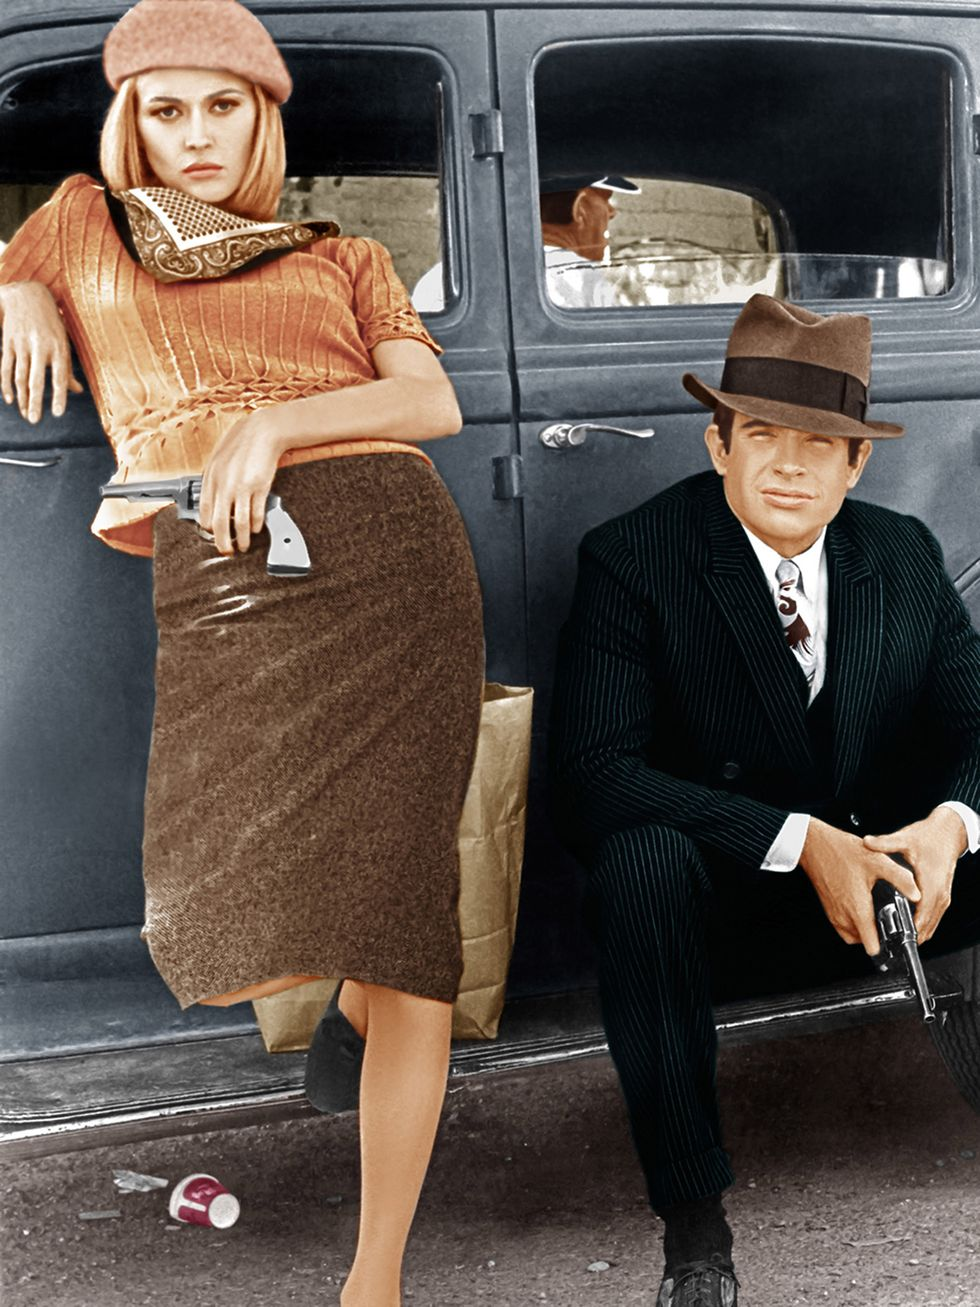 Bonnie Parker (Faye Dunaway) and Clyde Barrow (Warren Beatty), scene from 'Bonnie and Clyde', 1967